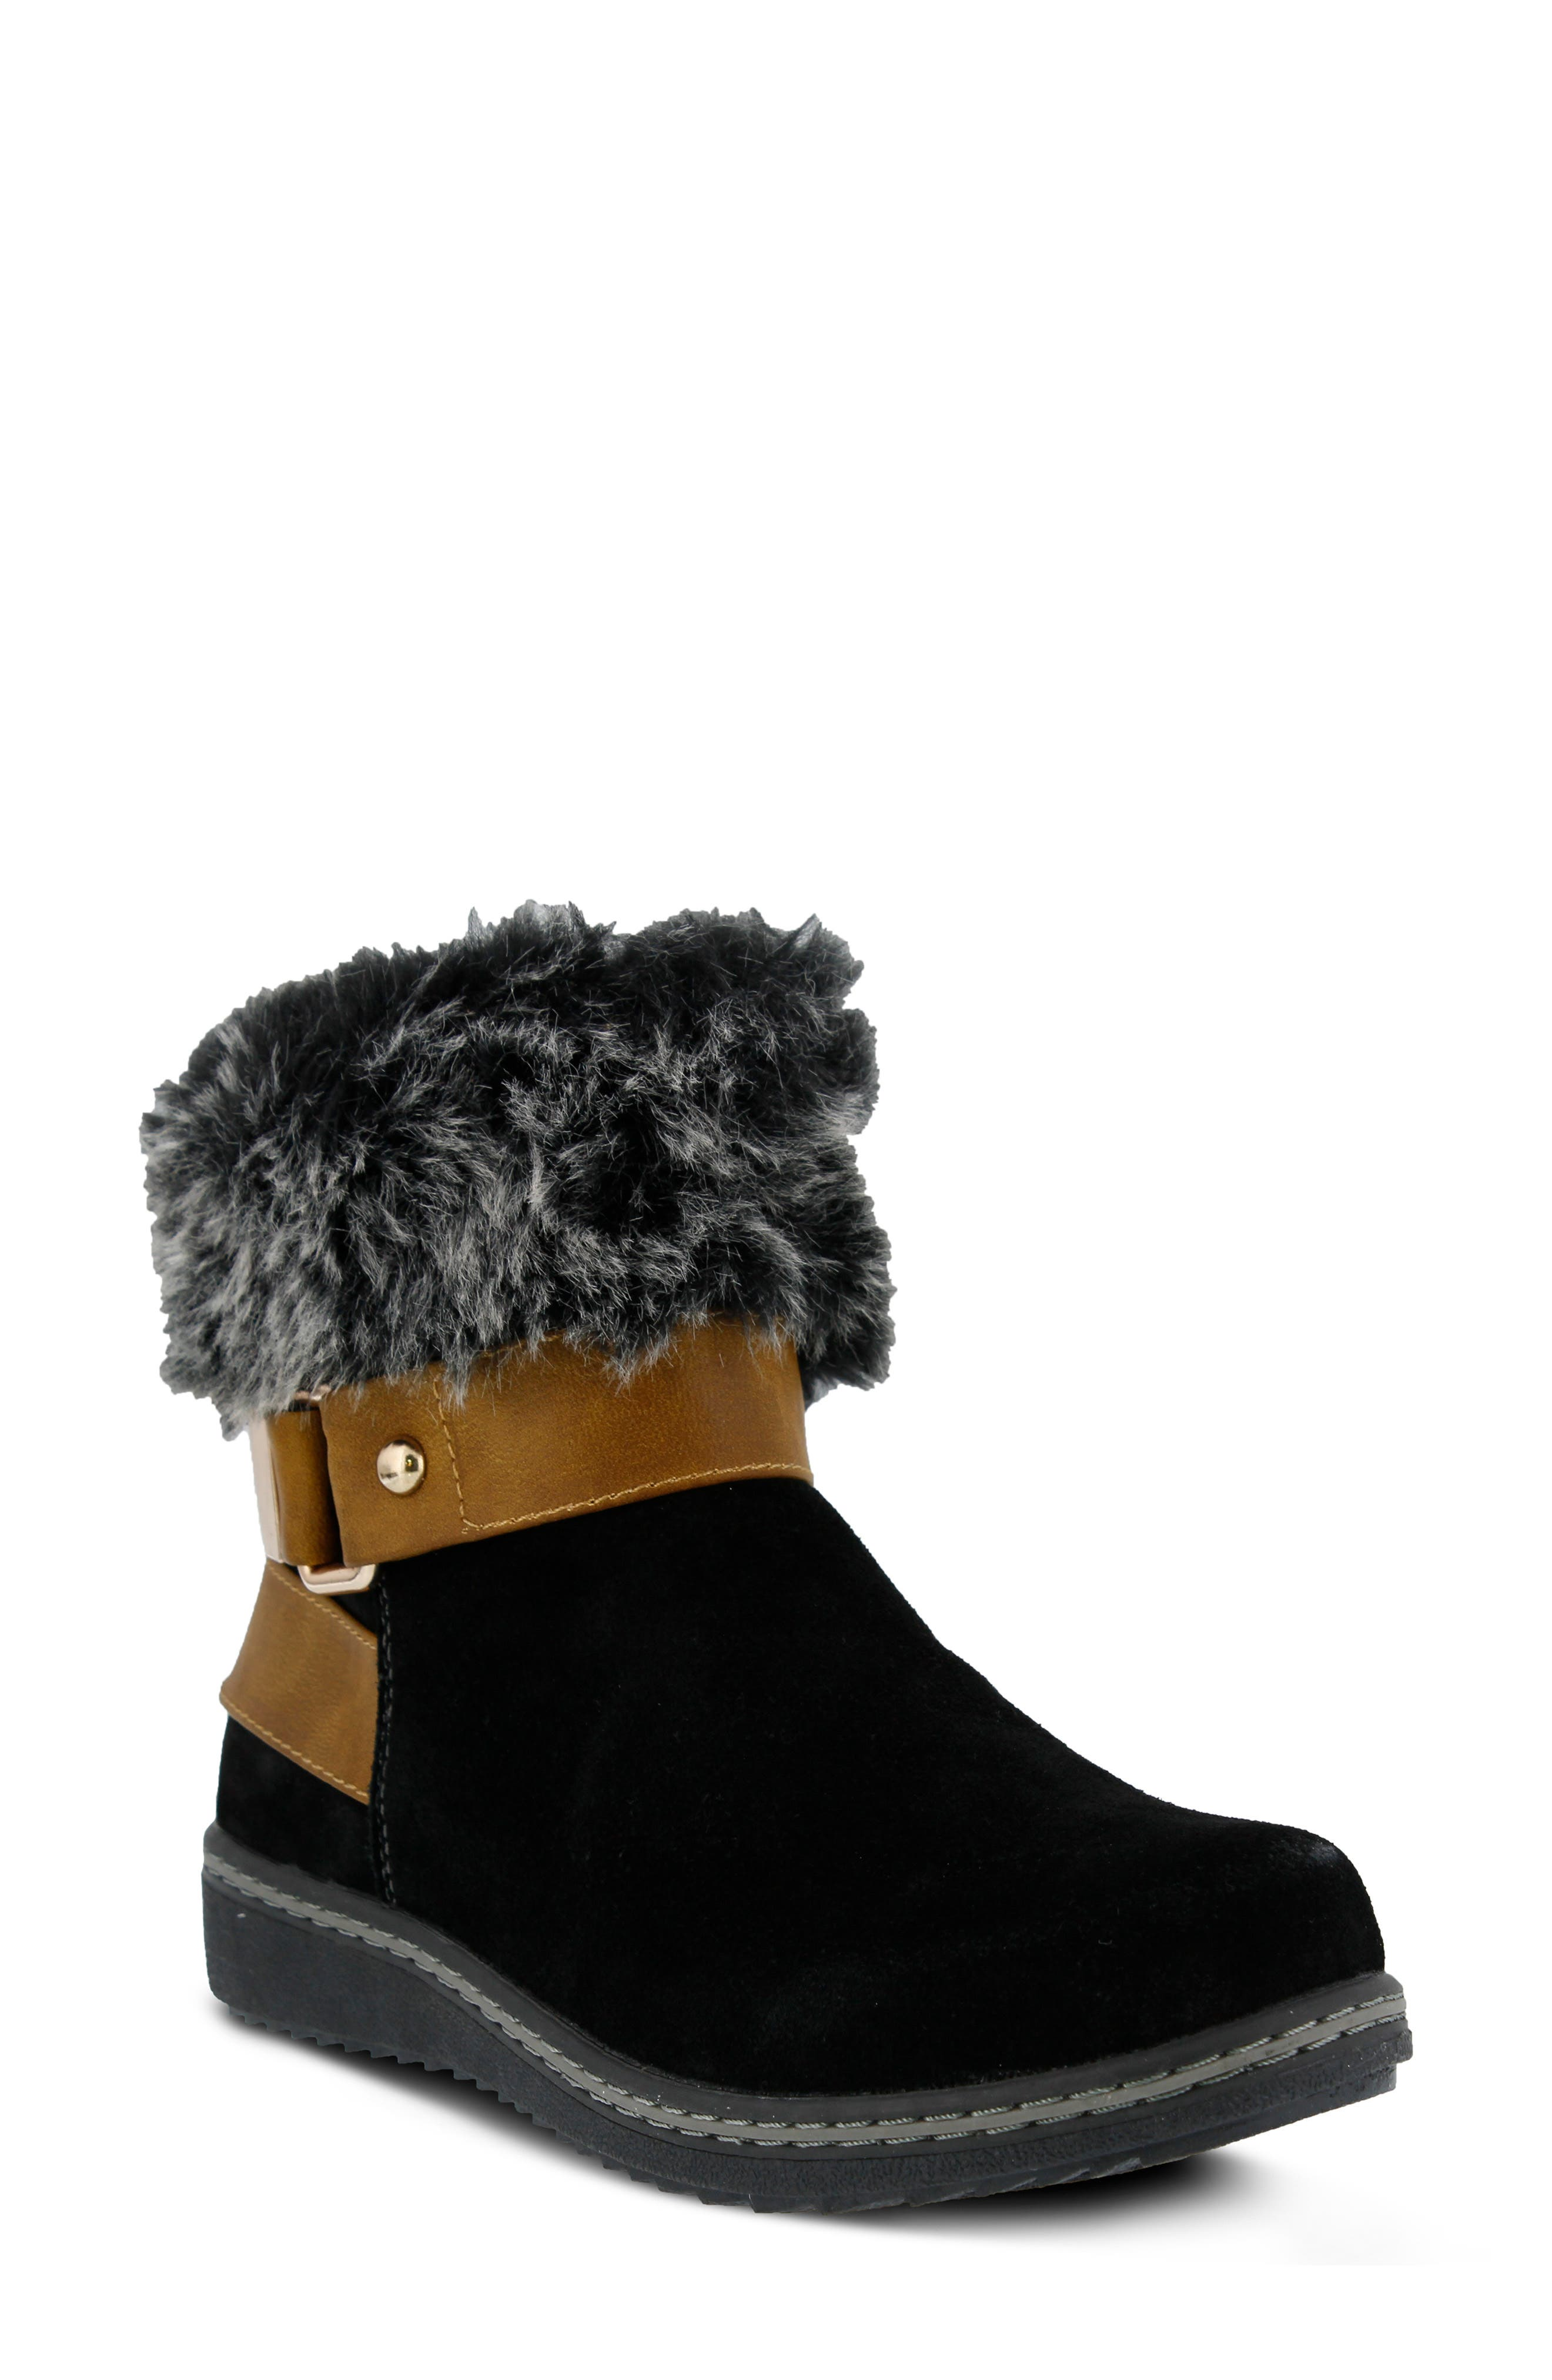 Spring Step Popsicle Water Resistant Faux Fur Bootie - Black